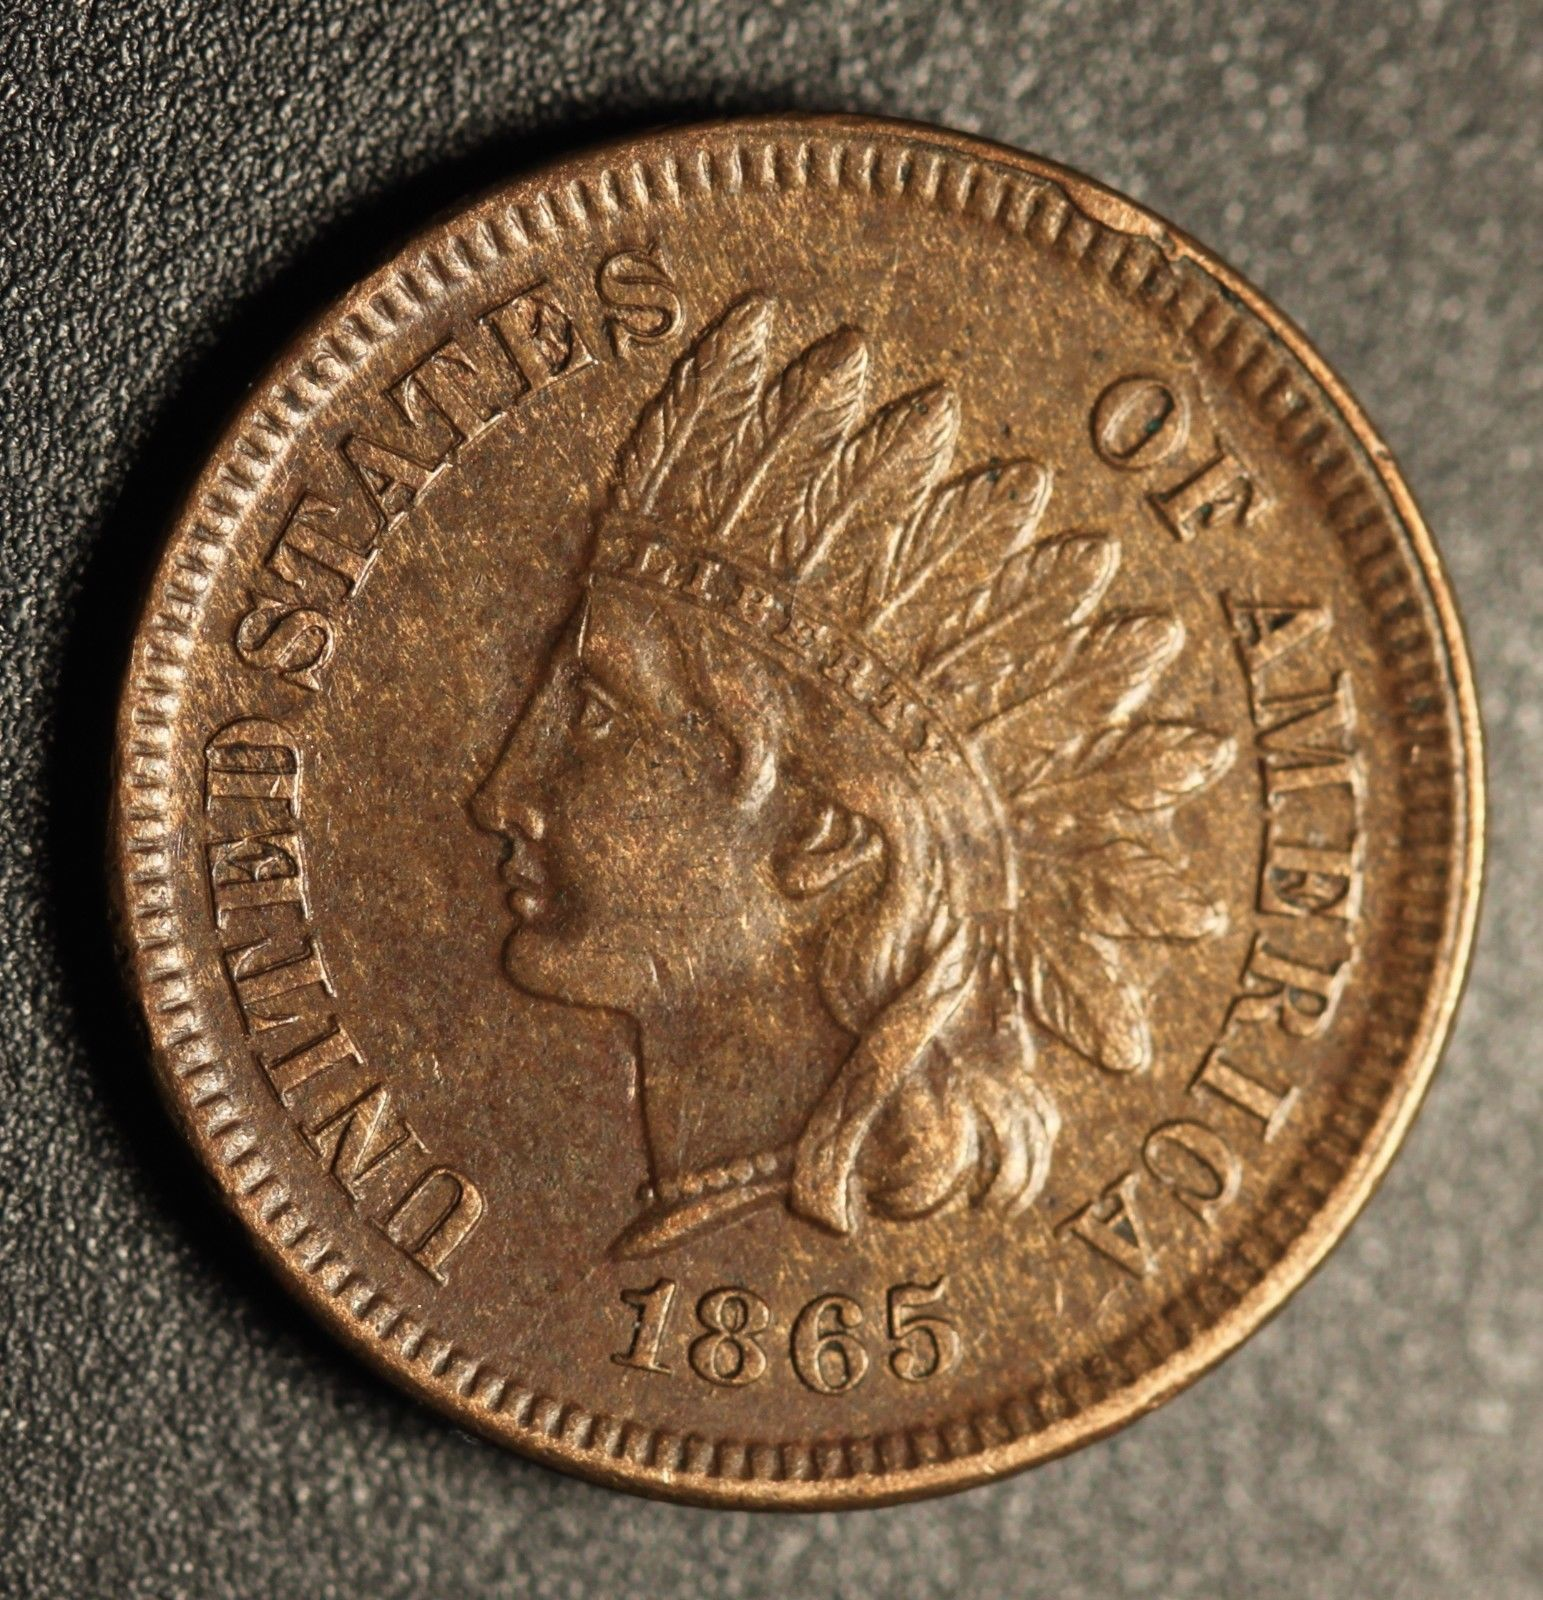 1865 Fancy 5 RPD-002 Indian Head Penny - Photo by Ed Nathanson